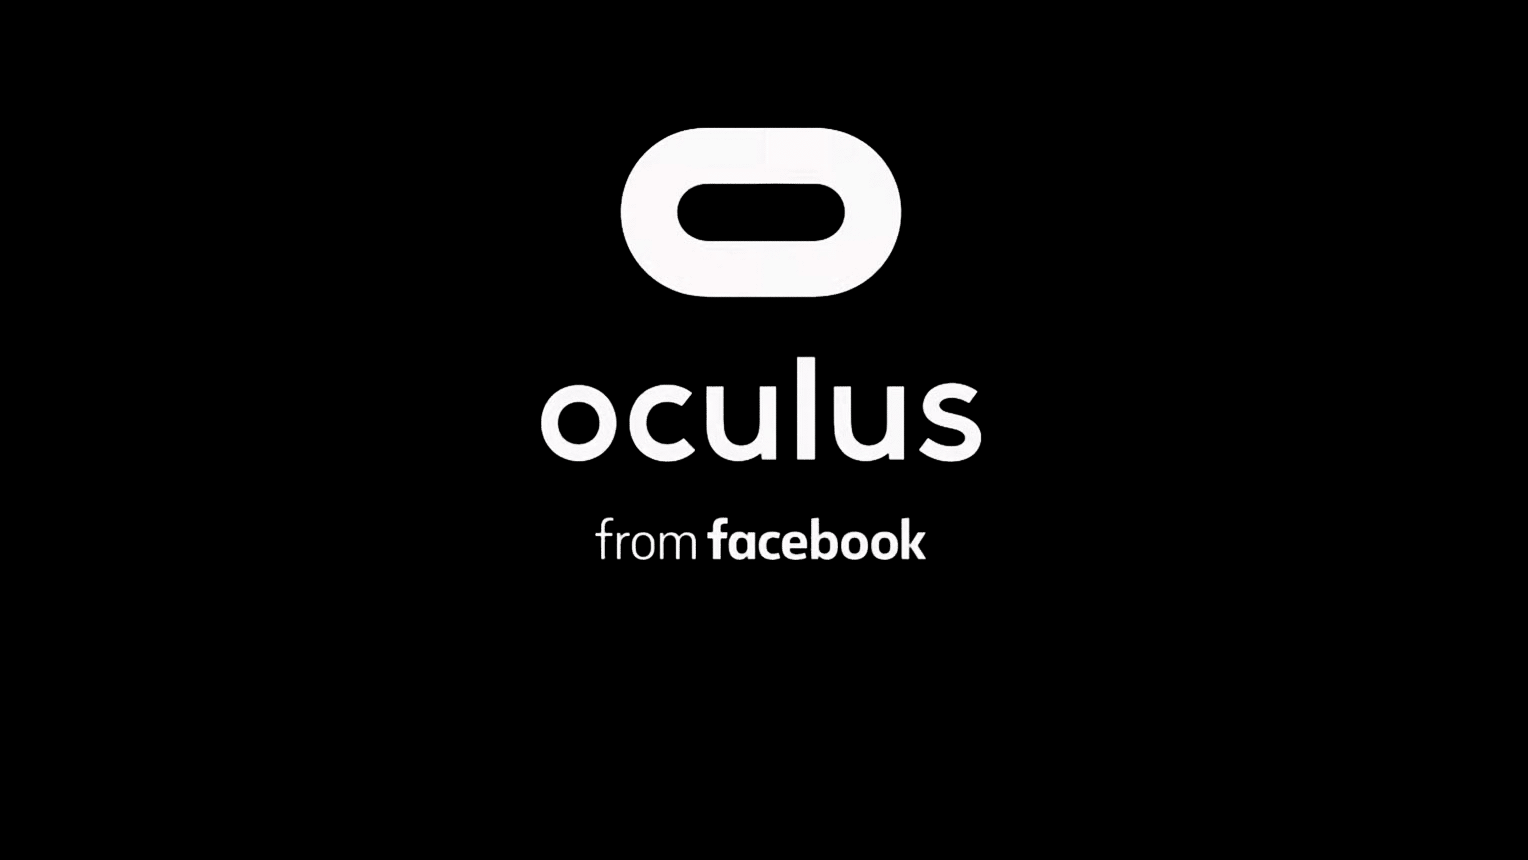 If you delete your Facebook account, you will lose all Oculus purchases and information